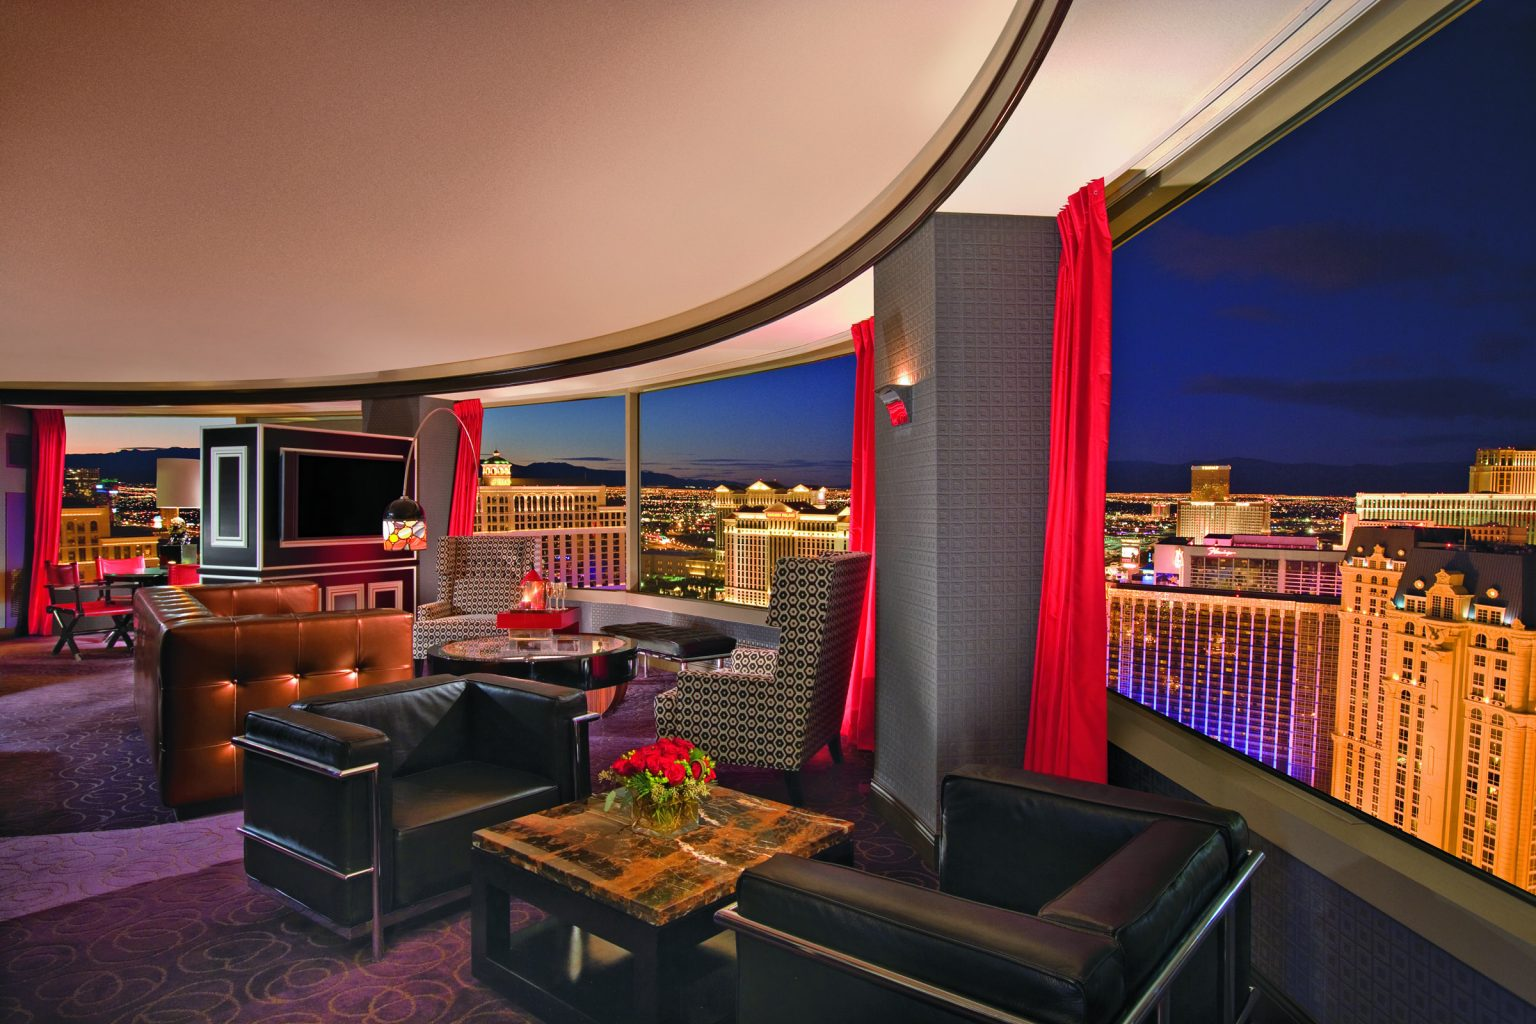 Rooms for Rent Near the Las Vegas Strip